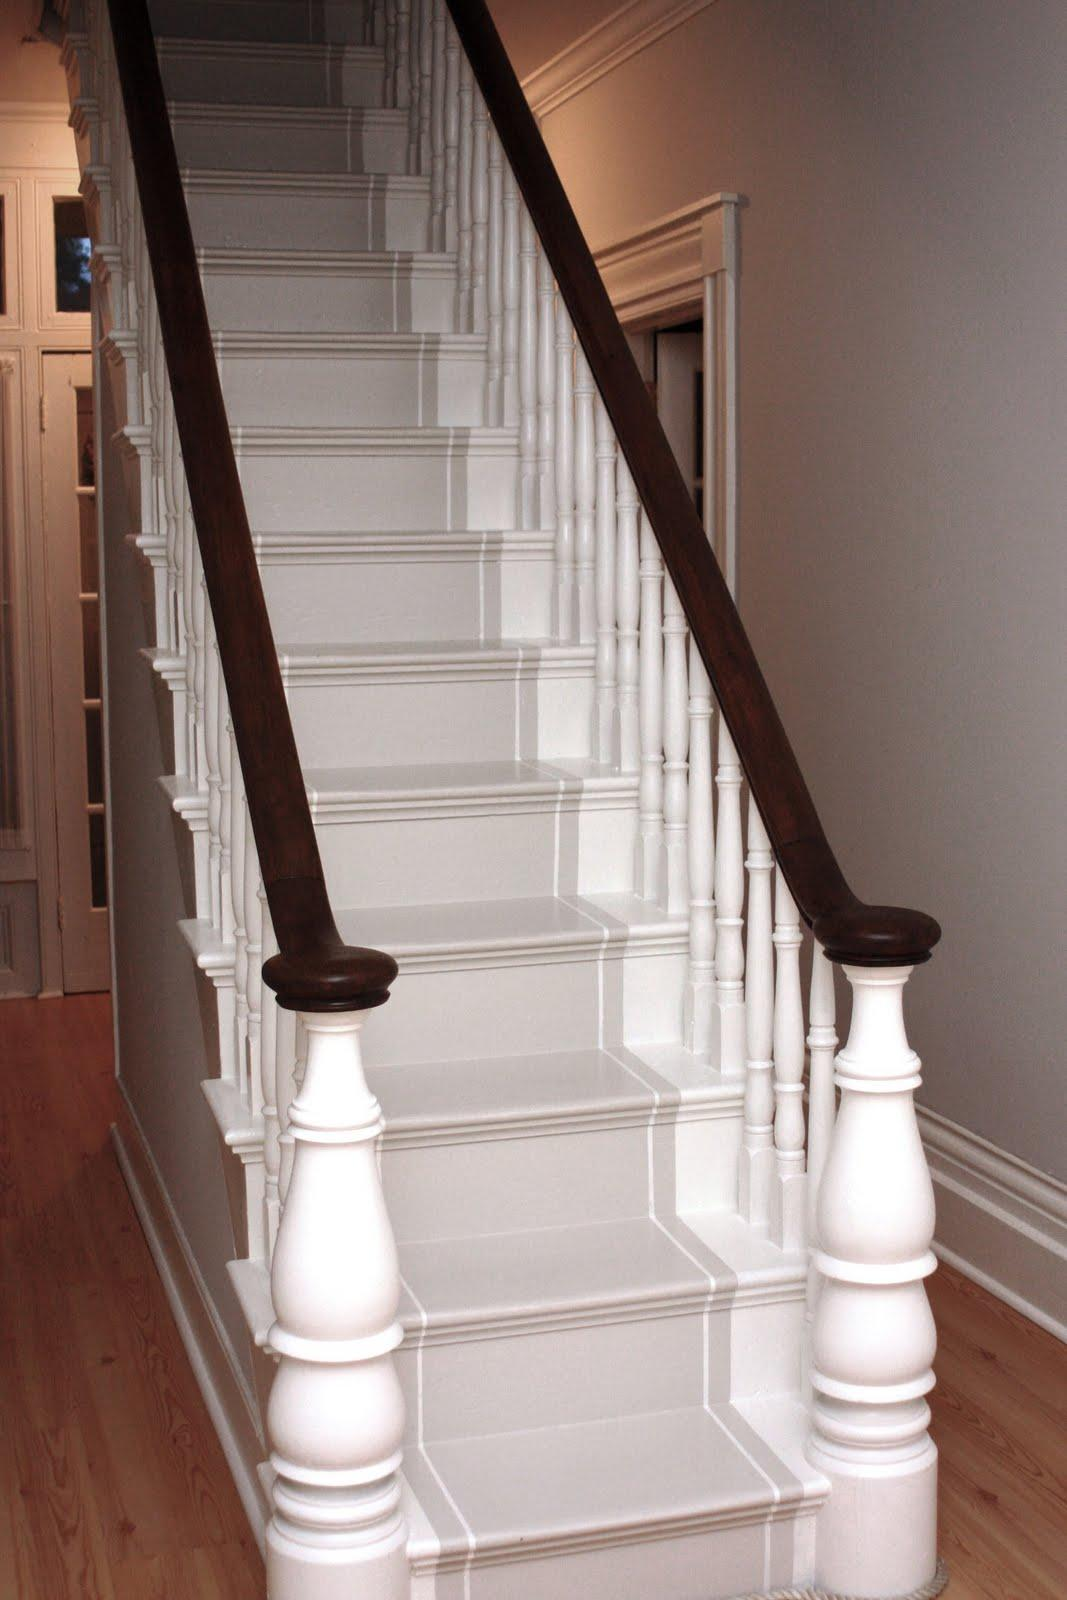 Stairway Solutions…Musings on Runners, Risers and Treads